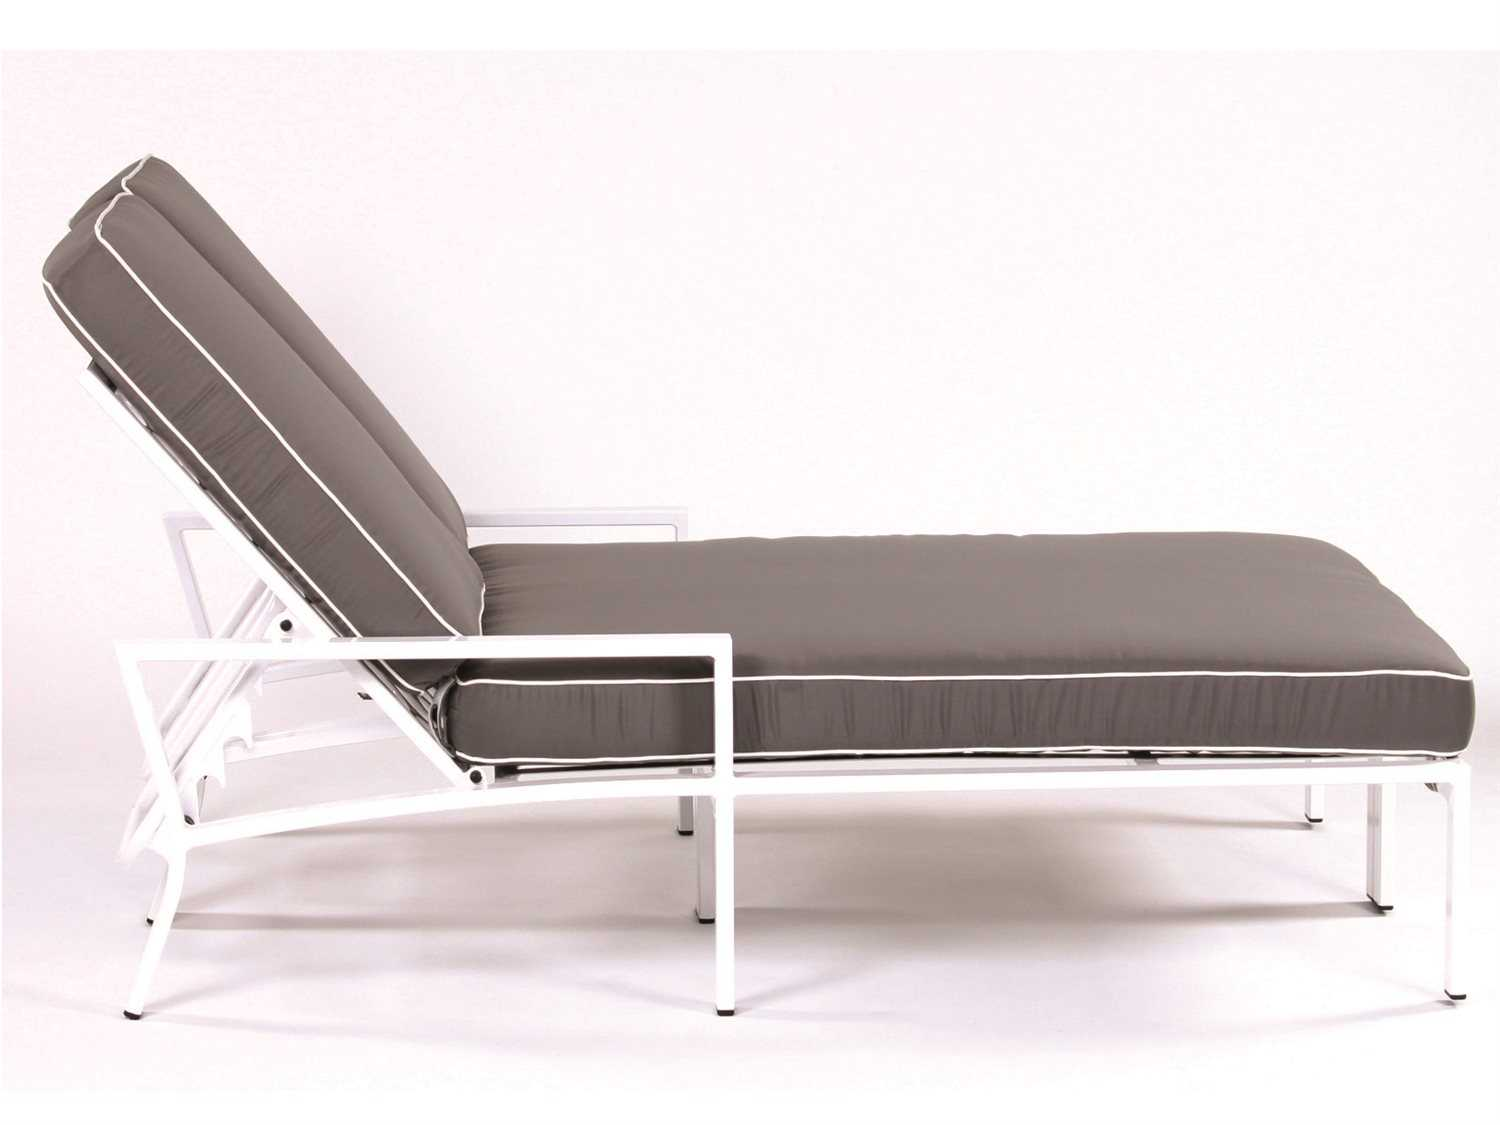 Koverton parkview cast aluminum double chaise lounge k for Cast aluminum chaise